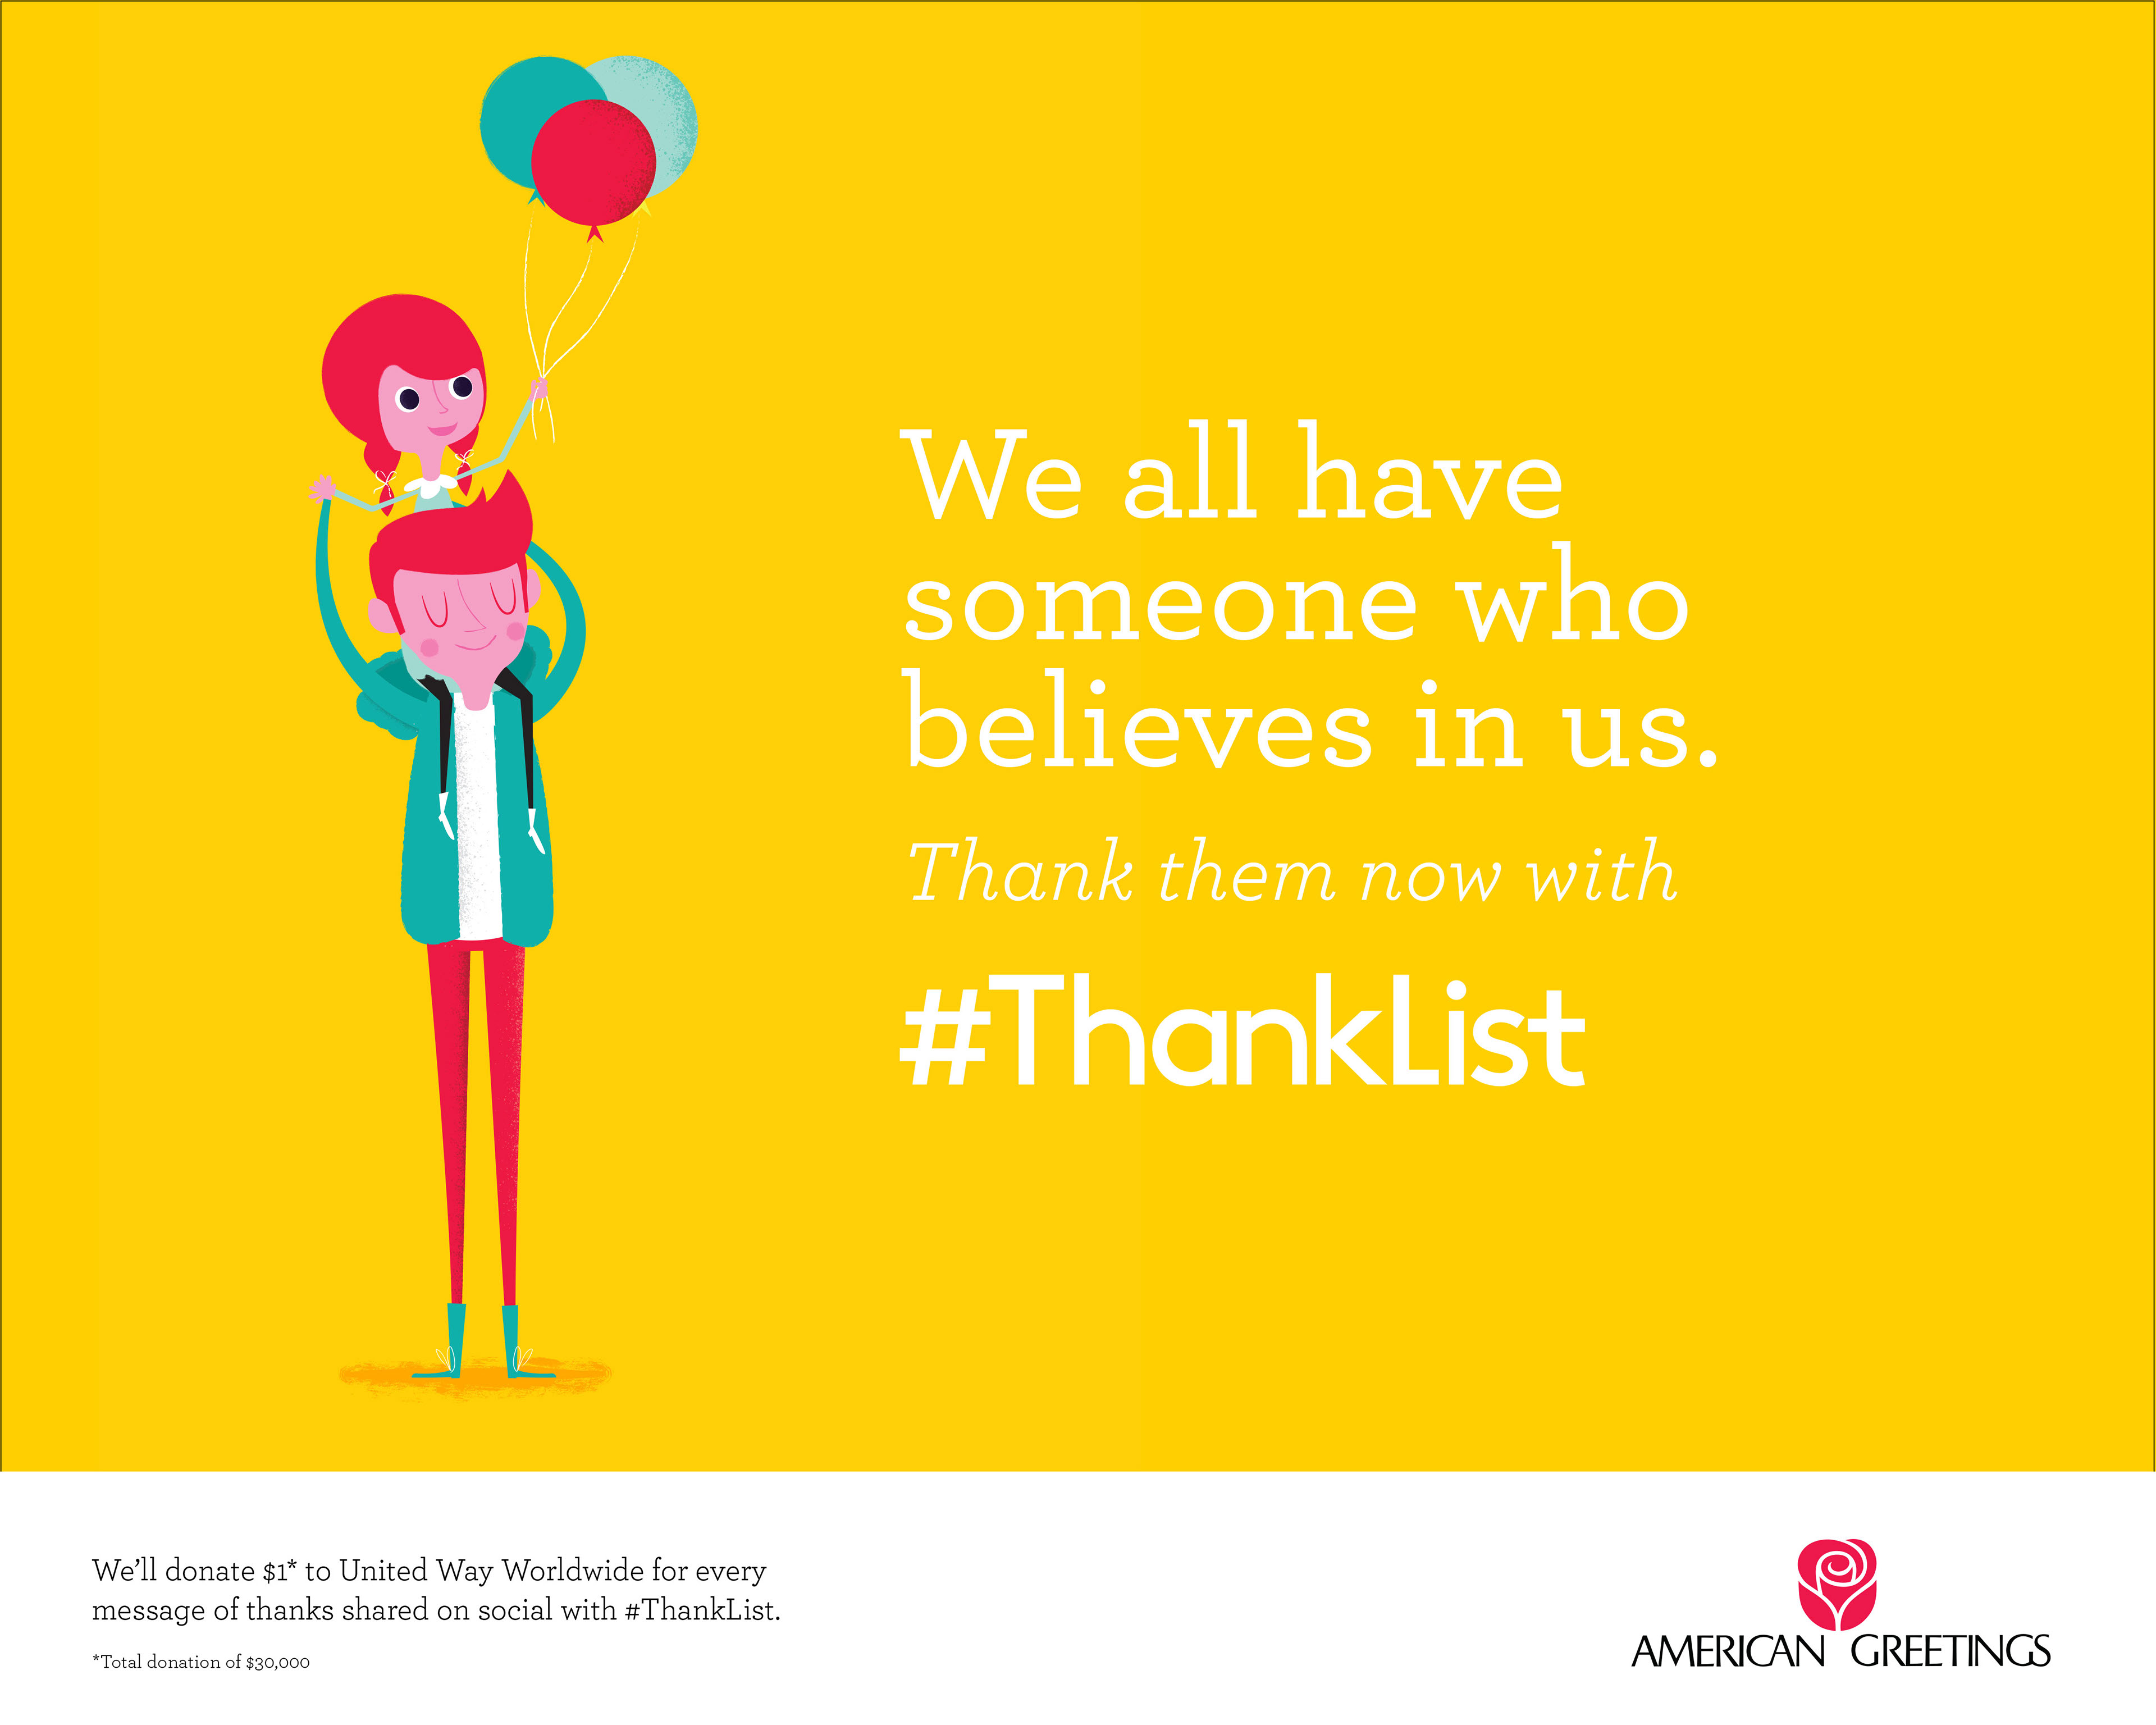 Candice latham american greetings thanklist banner kristyandbryce Images